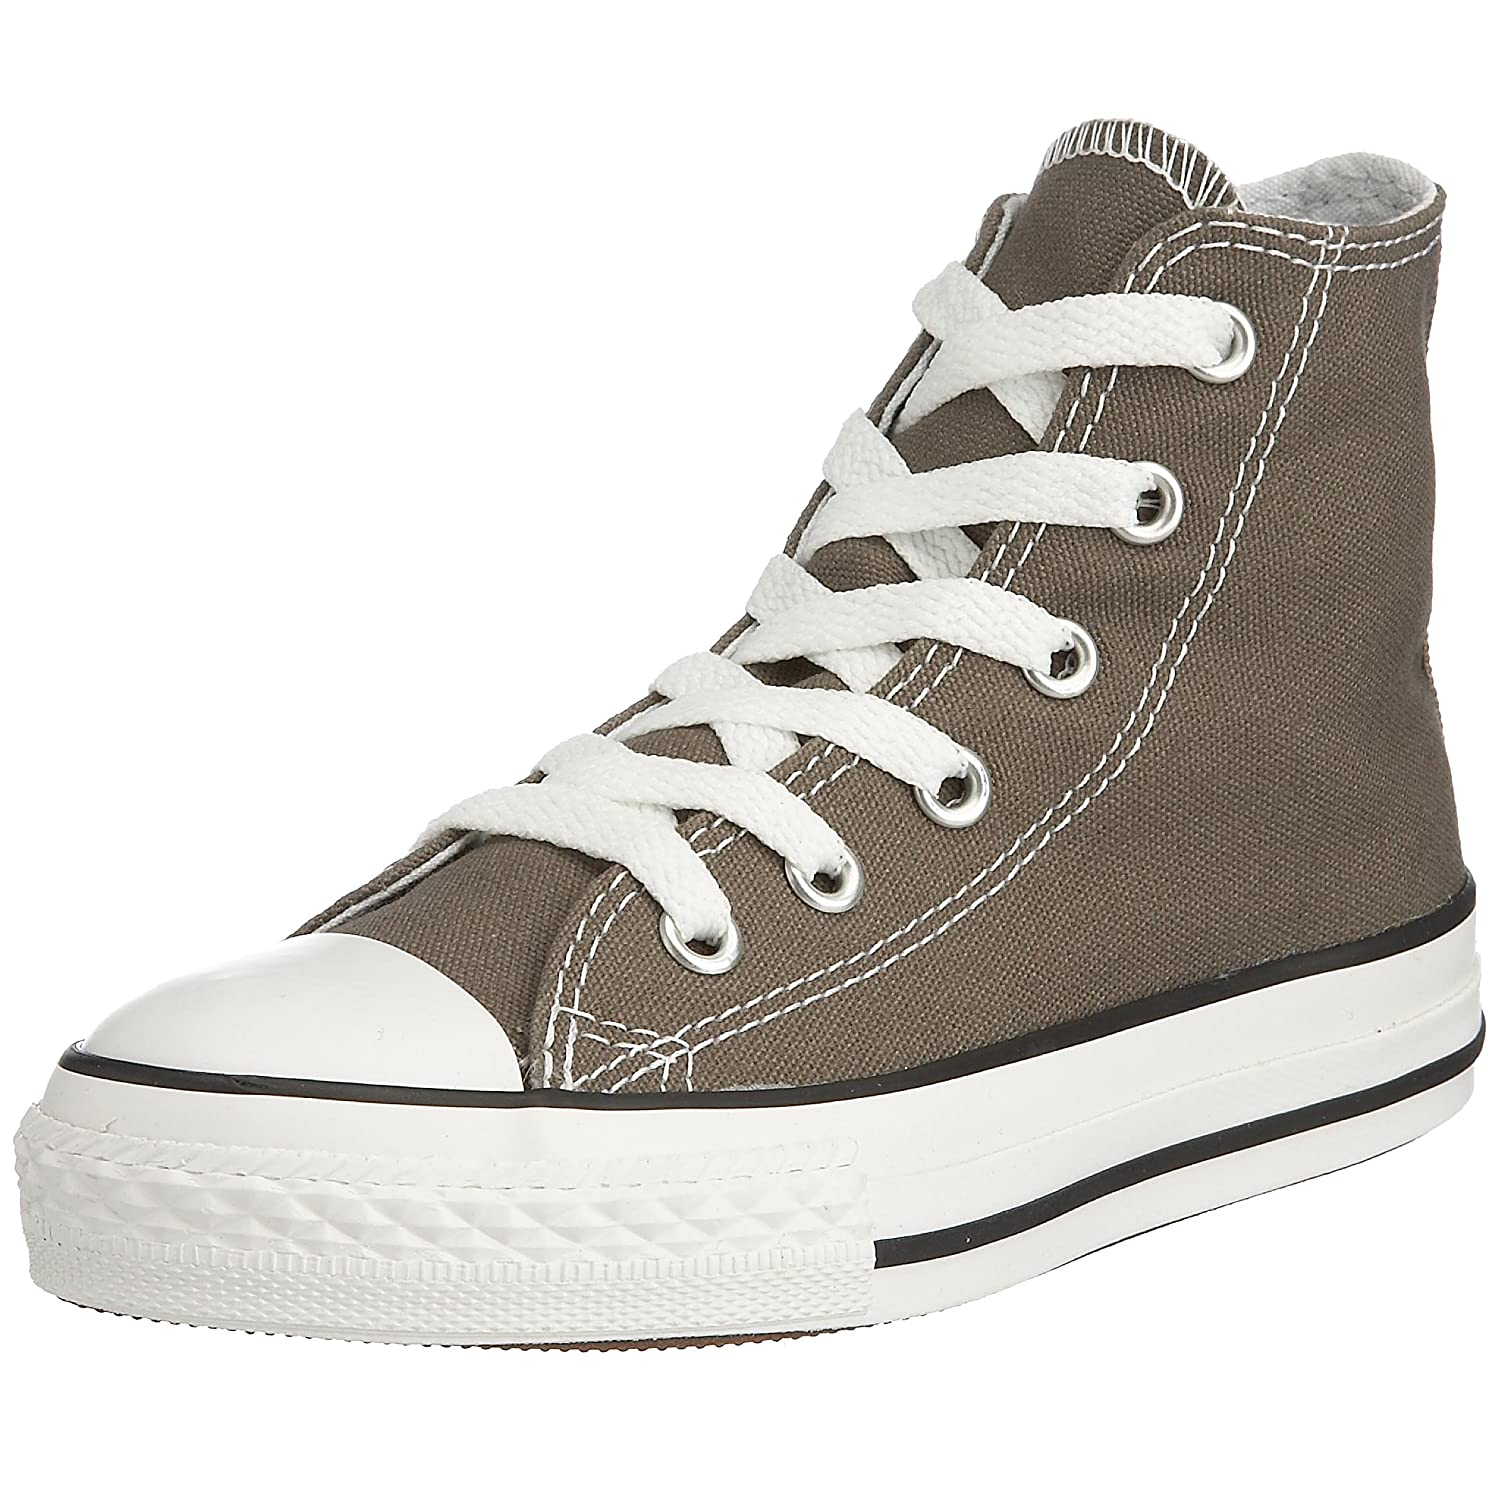 Converse Converse Ctas Core Hi, Baskets mode mixte adulte adulte Gris Core (Gris Mirage) 30c6fbc - boatplans.space